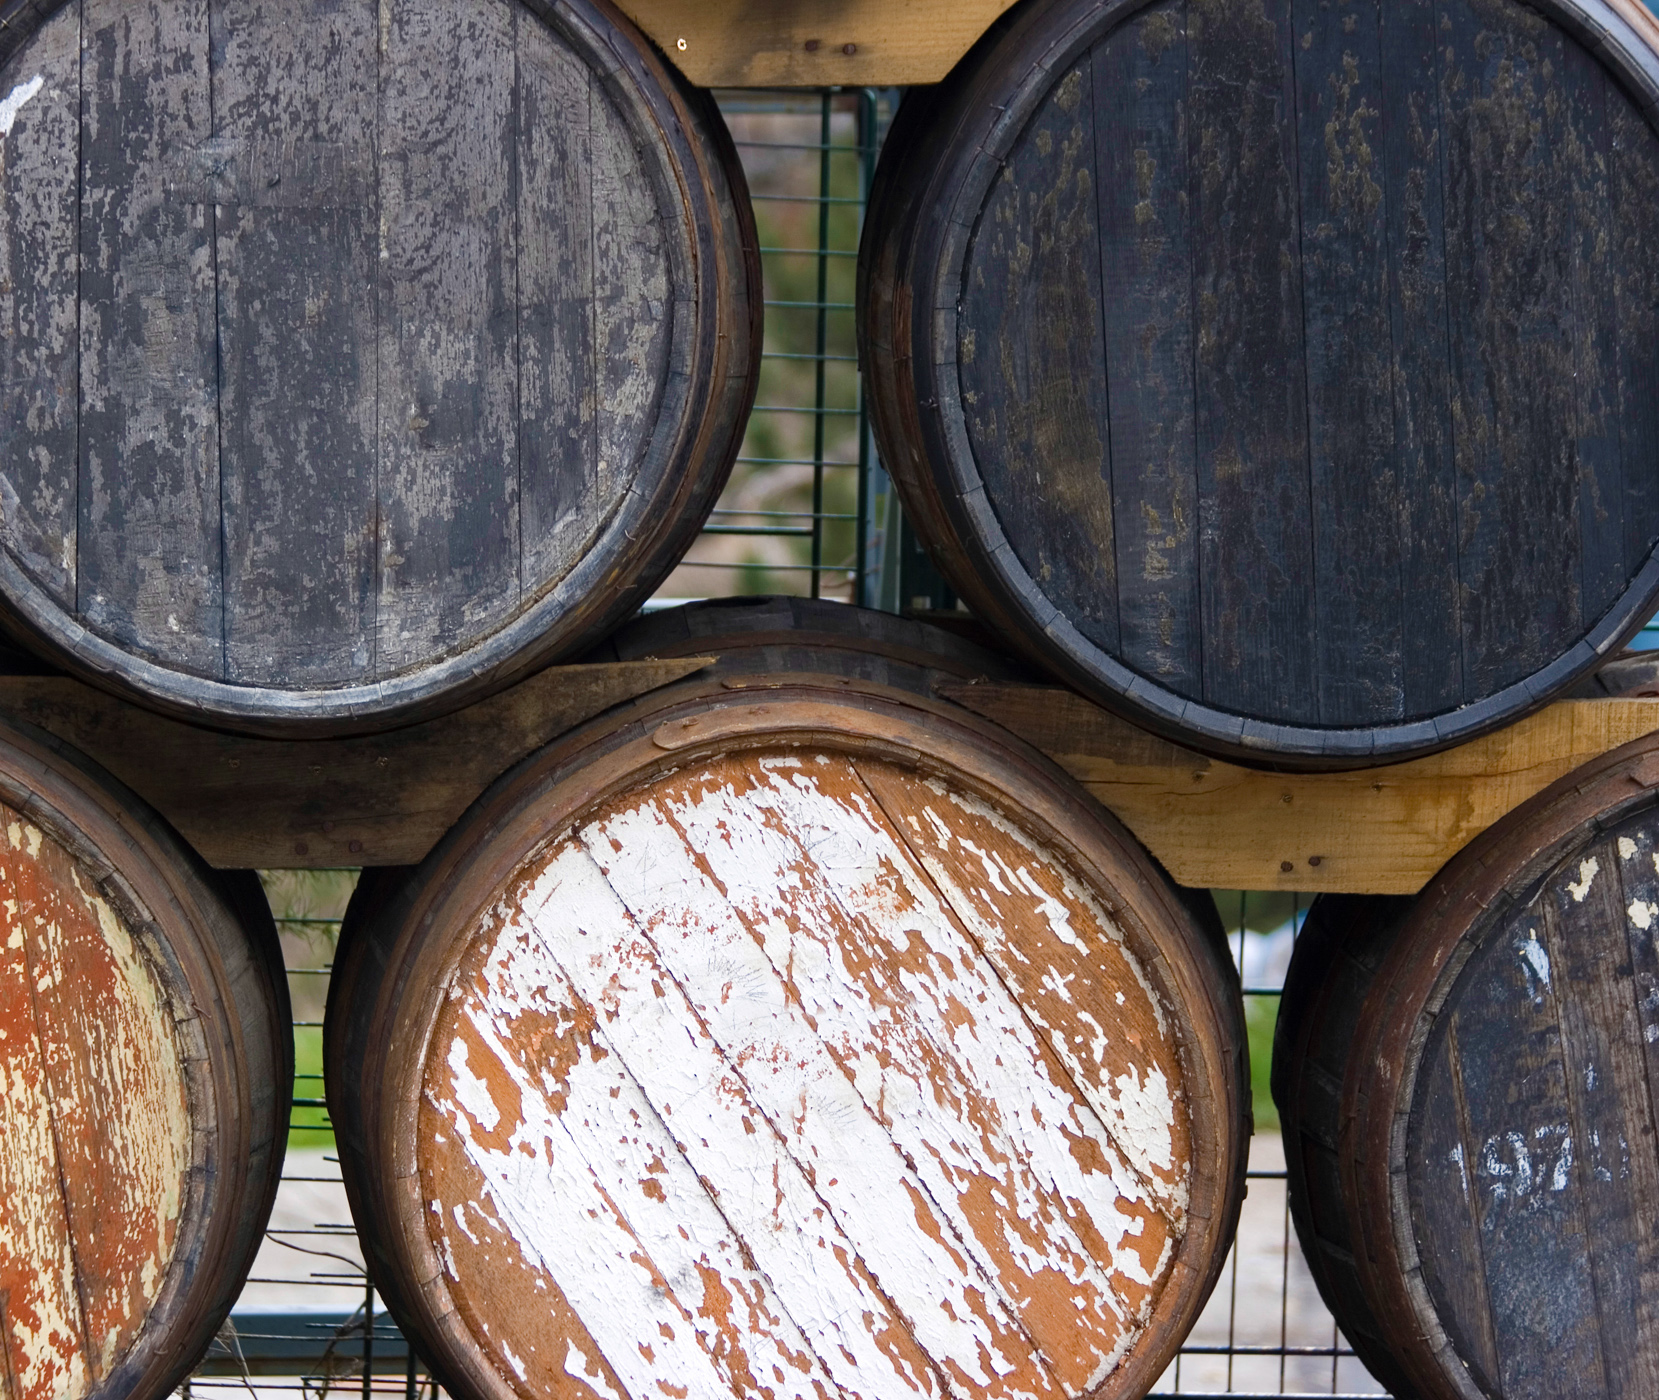 Old wooden cask for aging wines photo